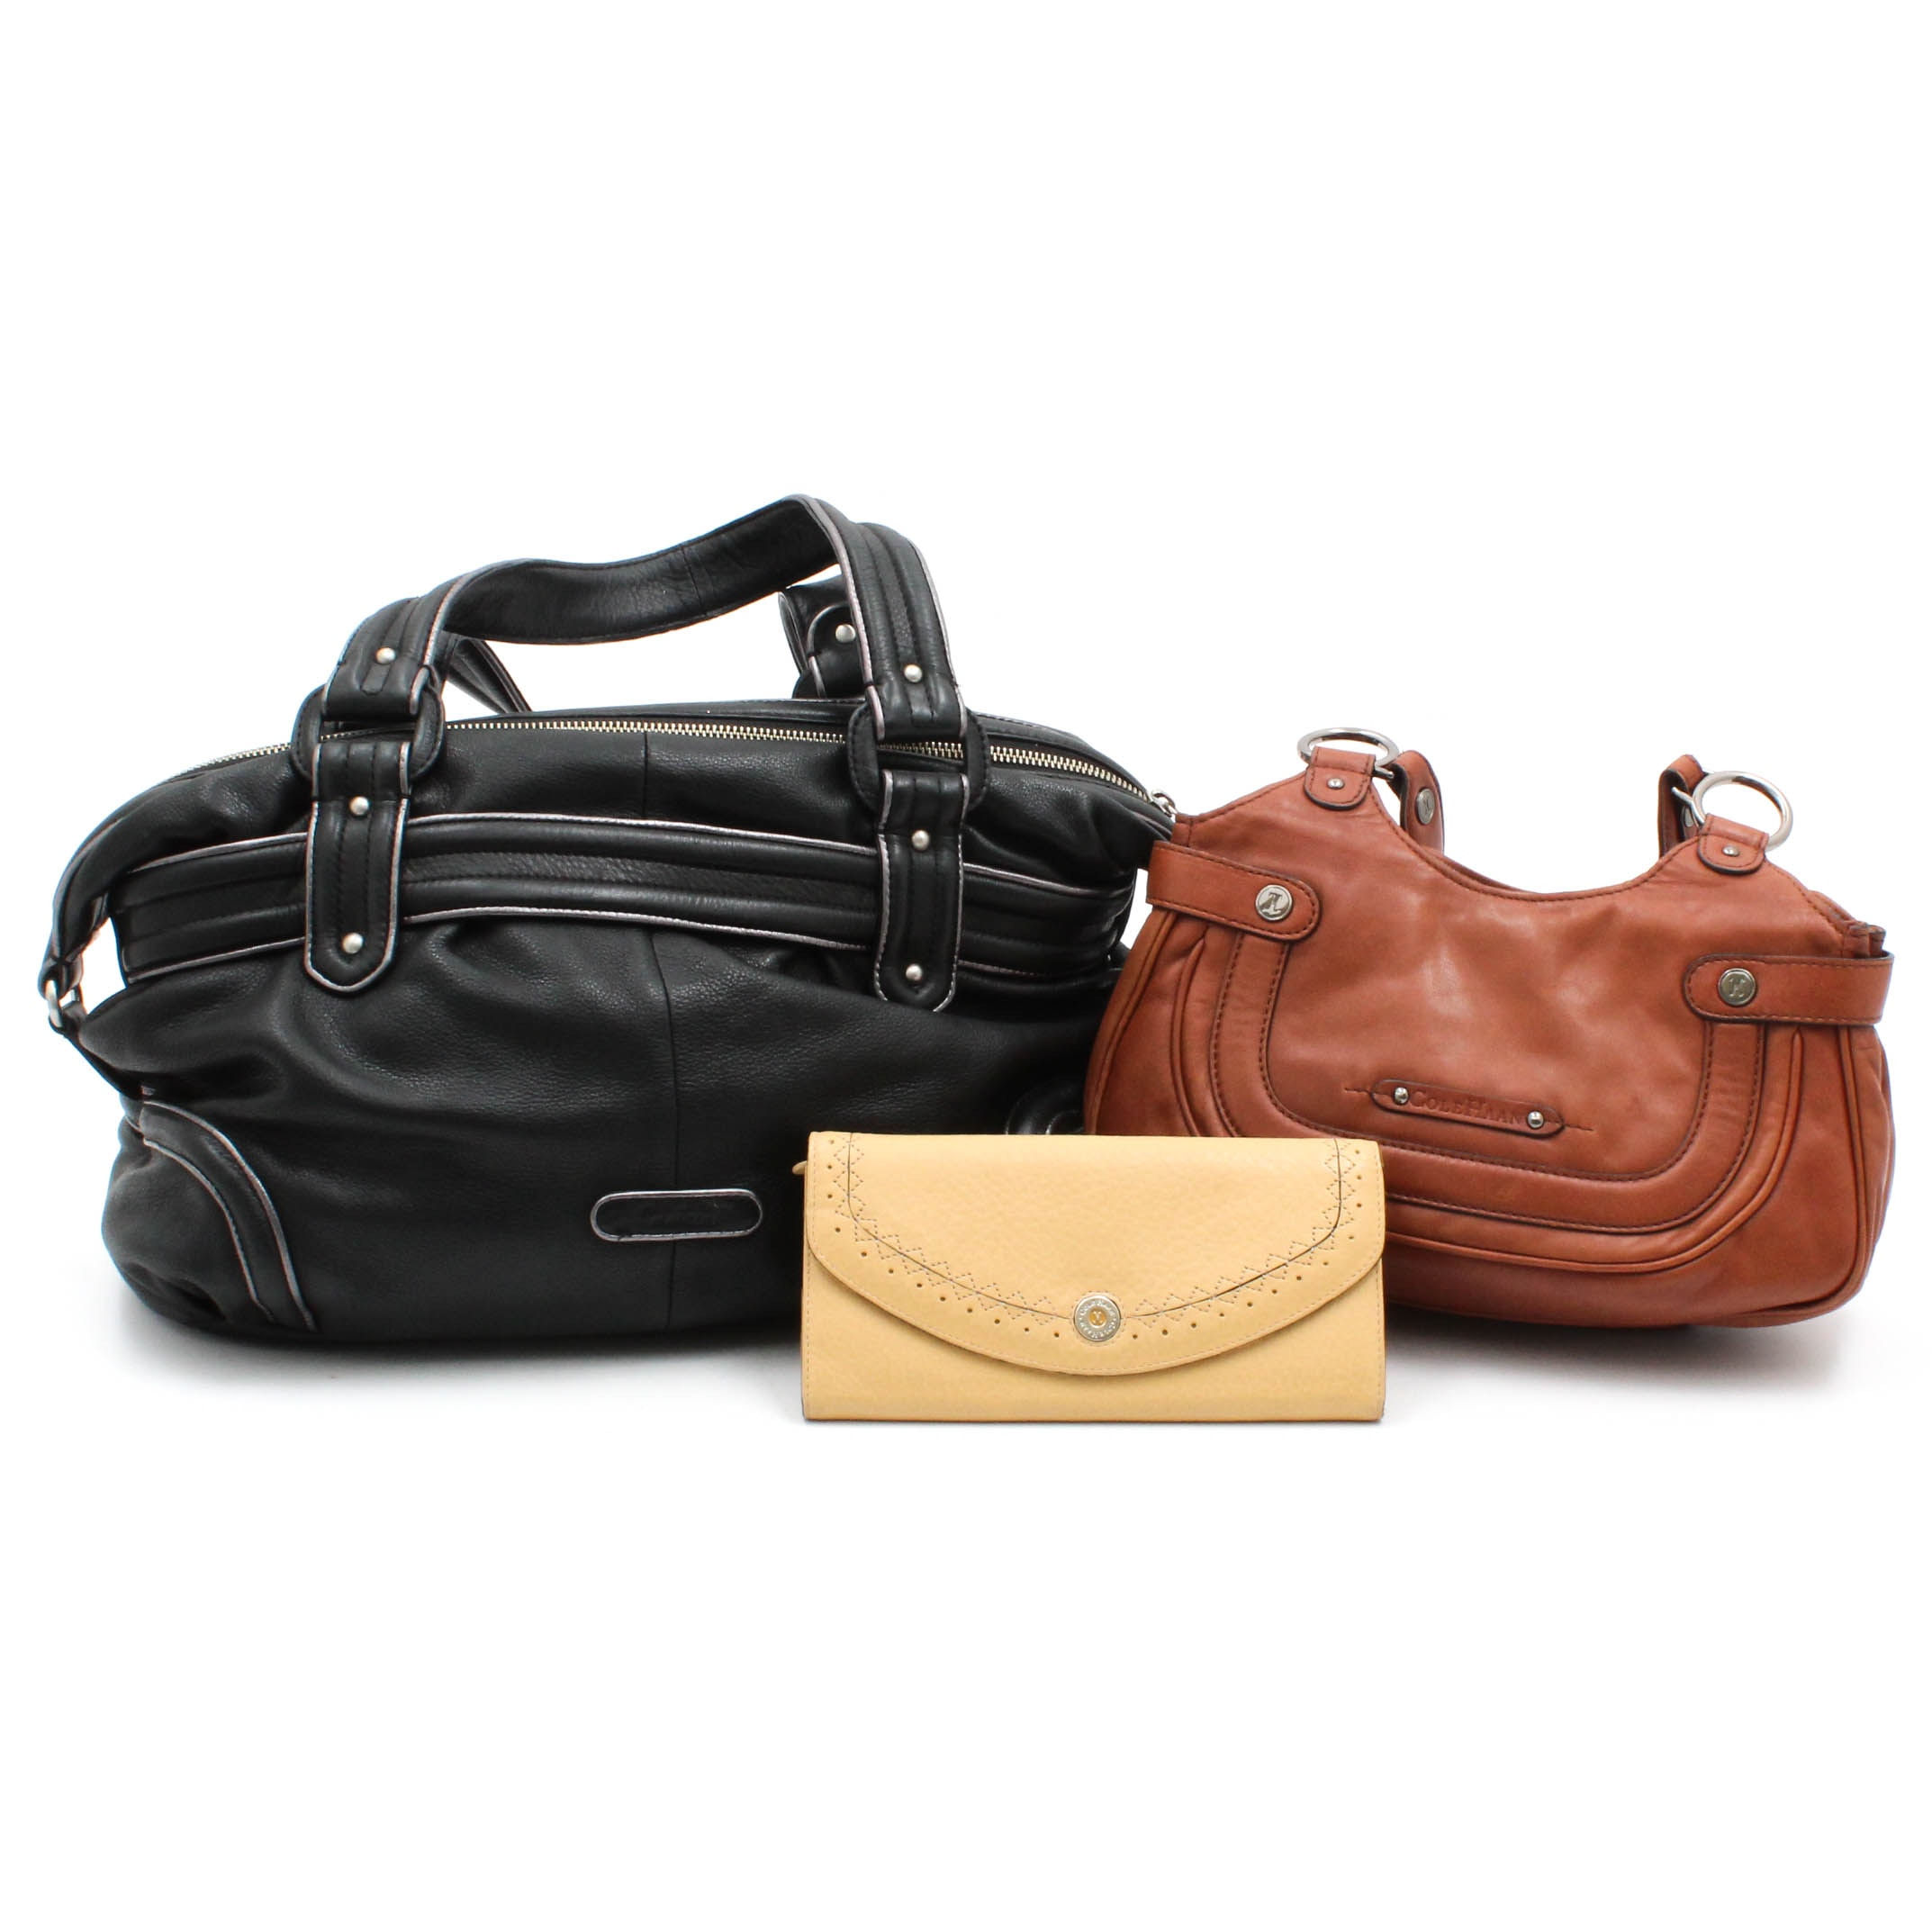 Cole Haan Leather Handbags and Wallet